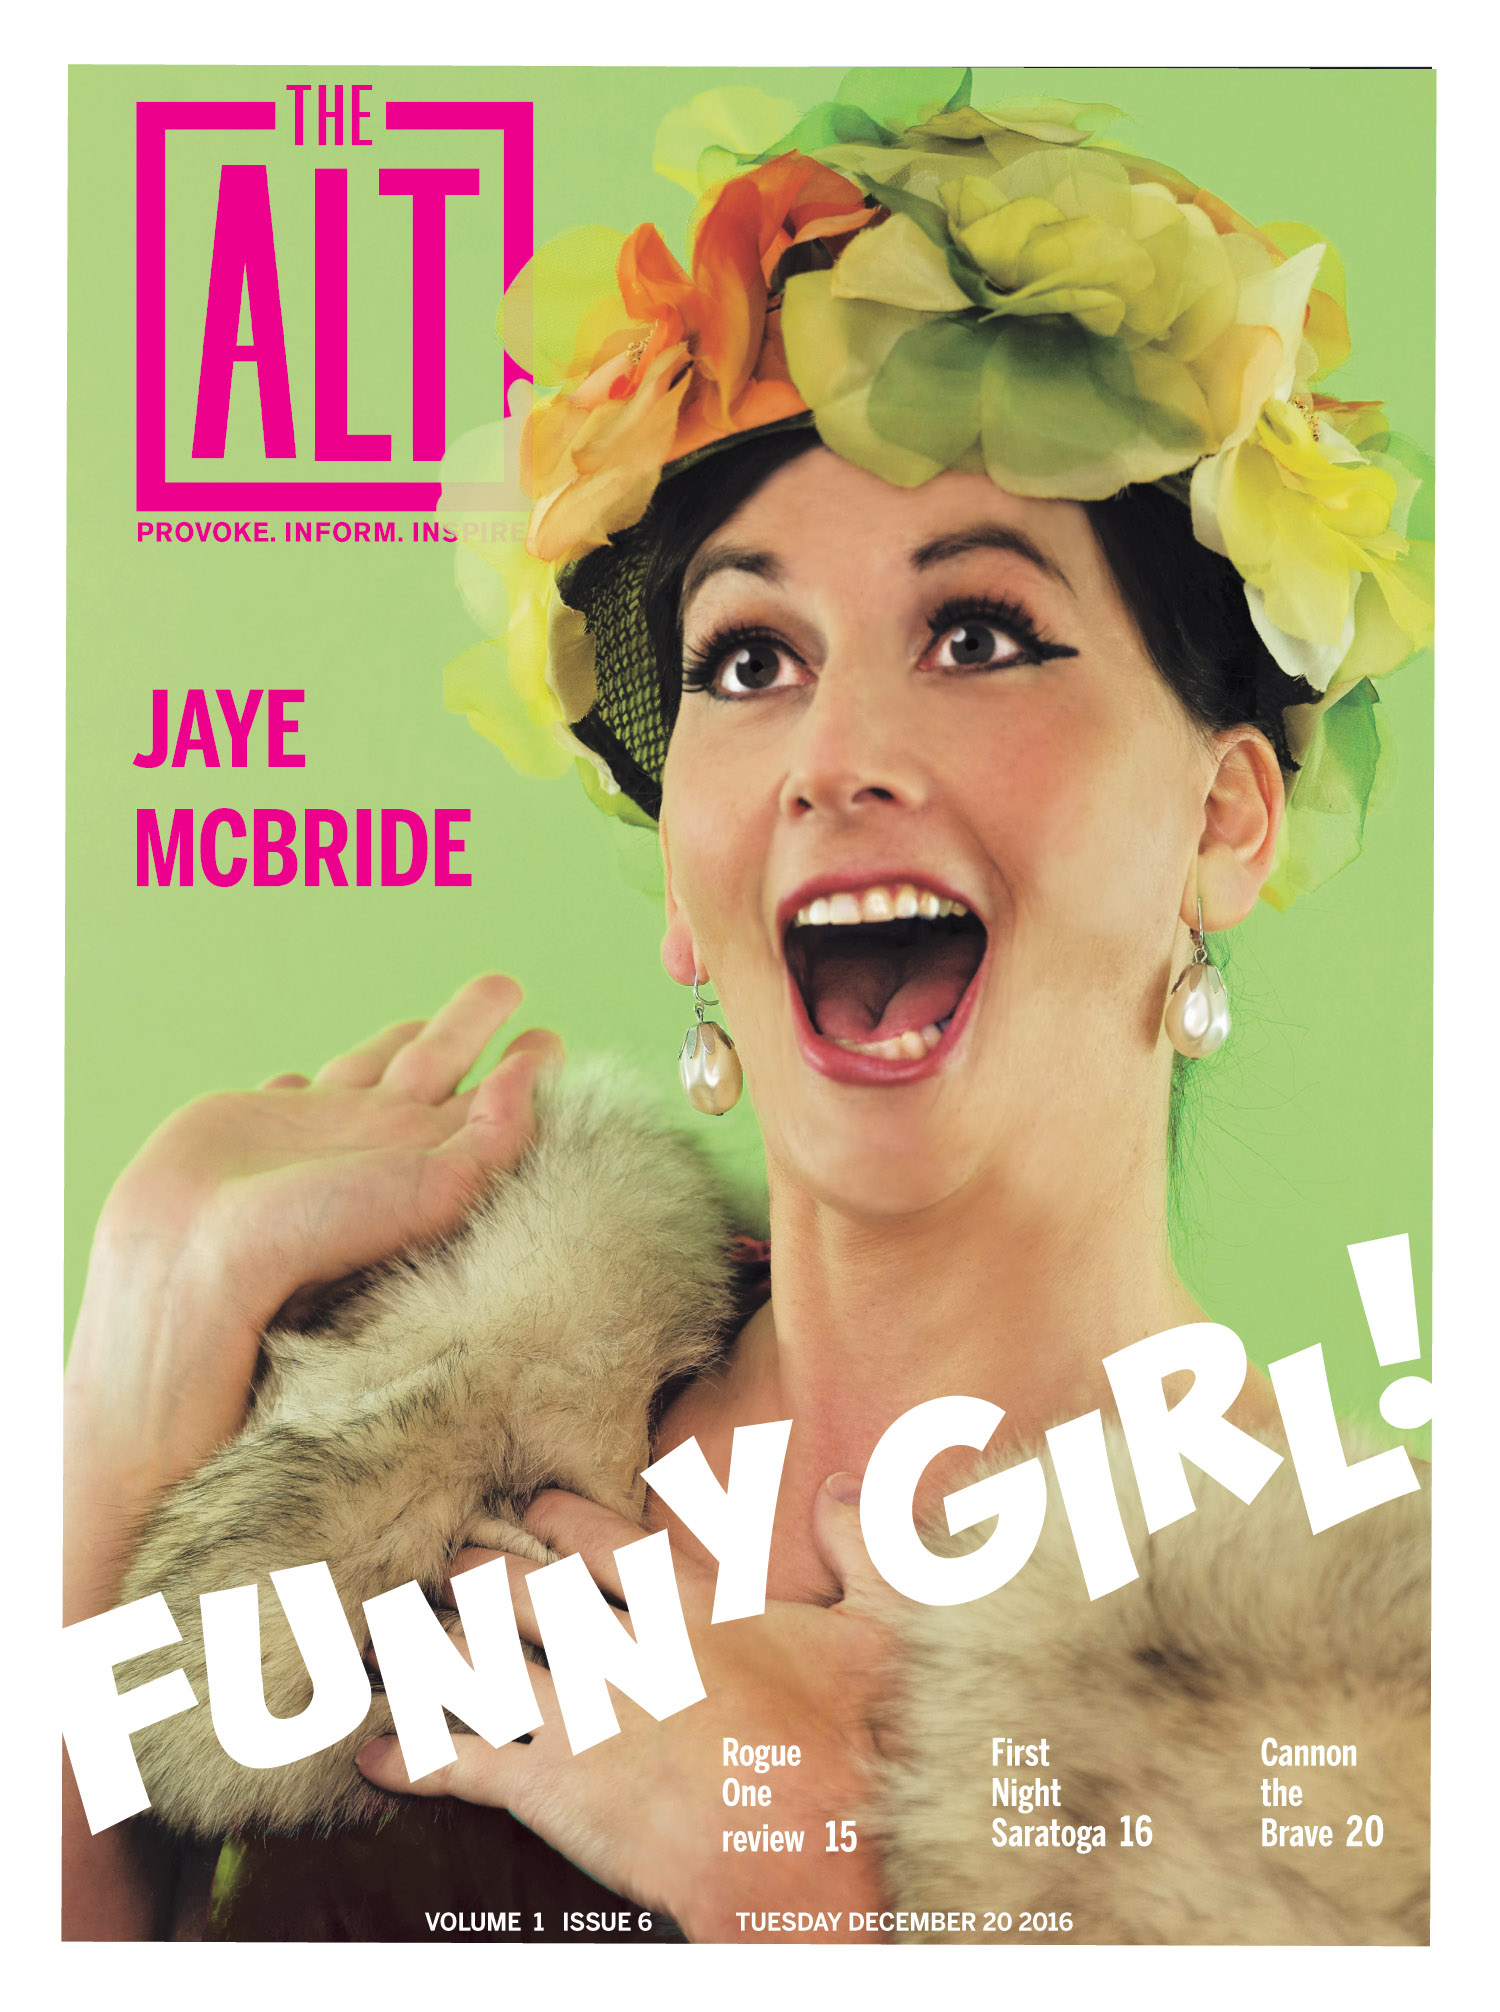 Identity and comedy go hand in hand with funny girl Jaye McBride